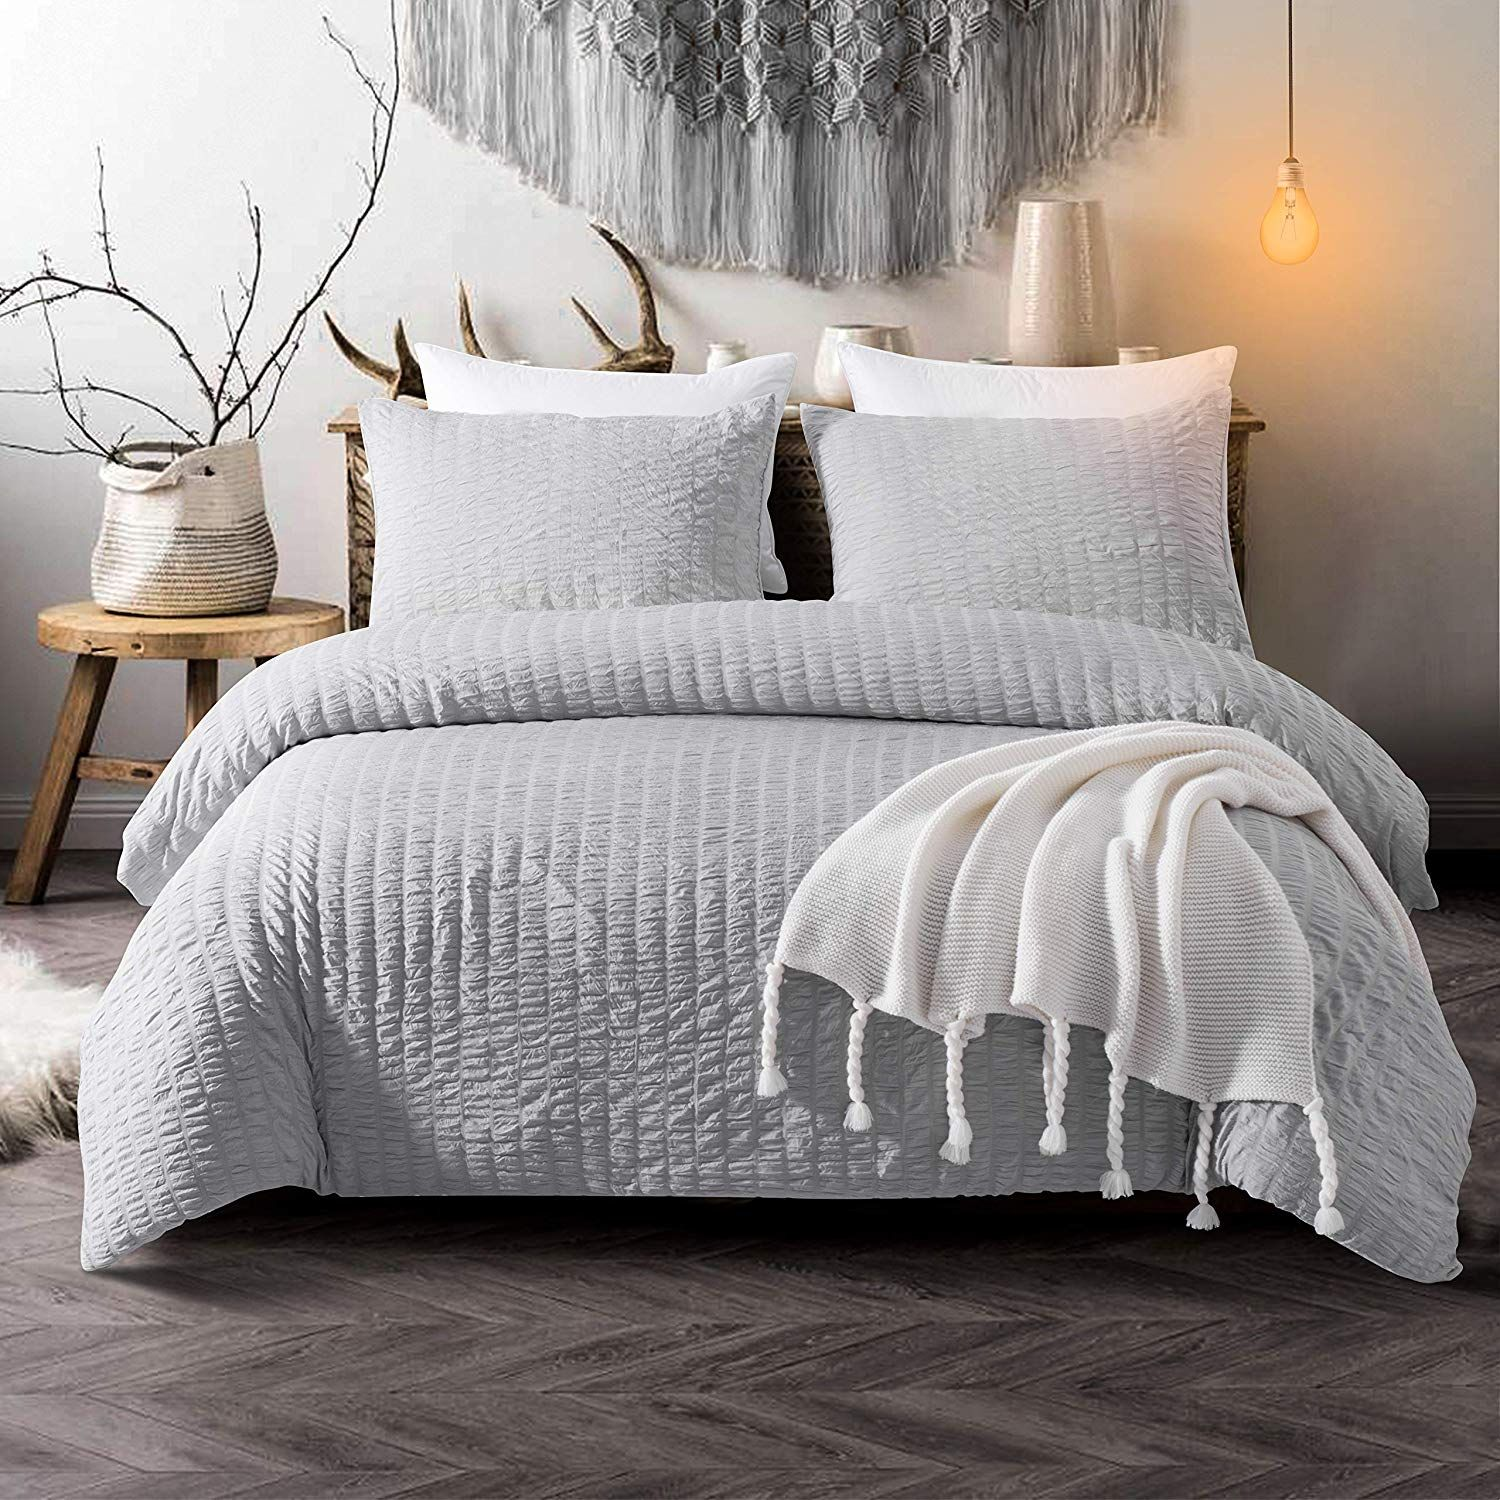 modern master bedroom with threshold seersucker duvet cover set | Cozyholy Seersucker Duvet Cover Set 3-Piece Nature Style ...